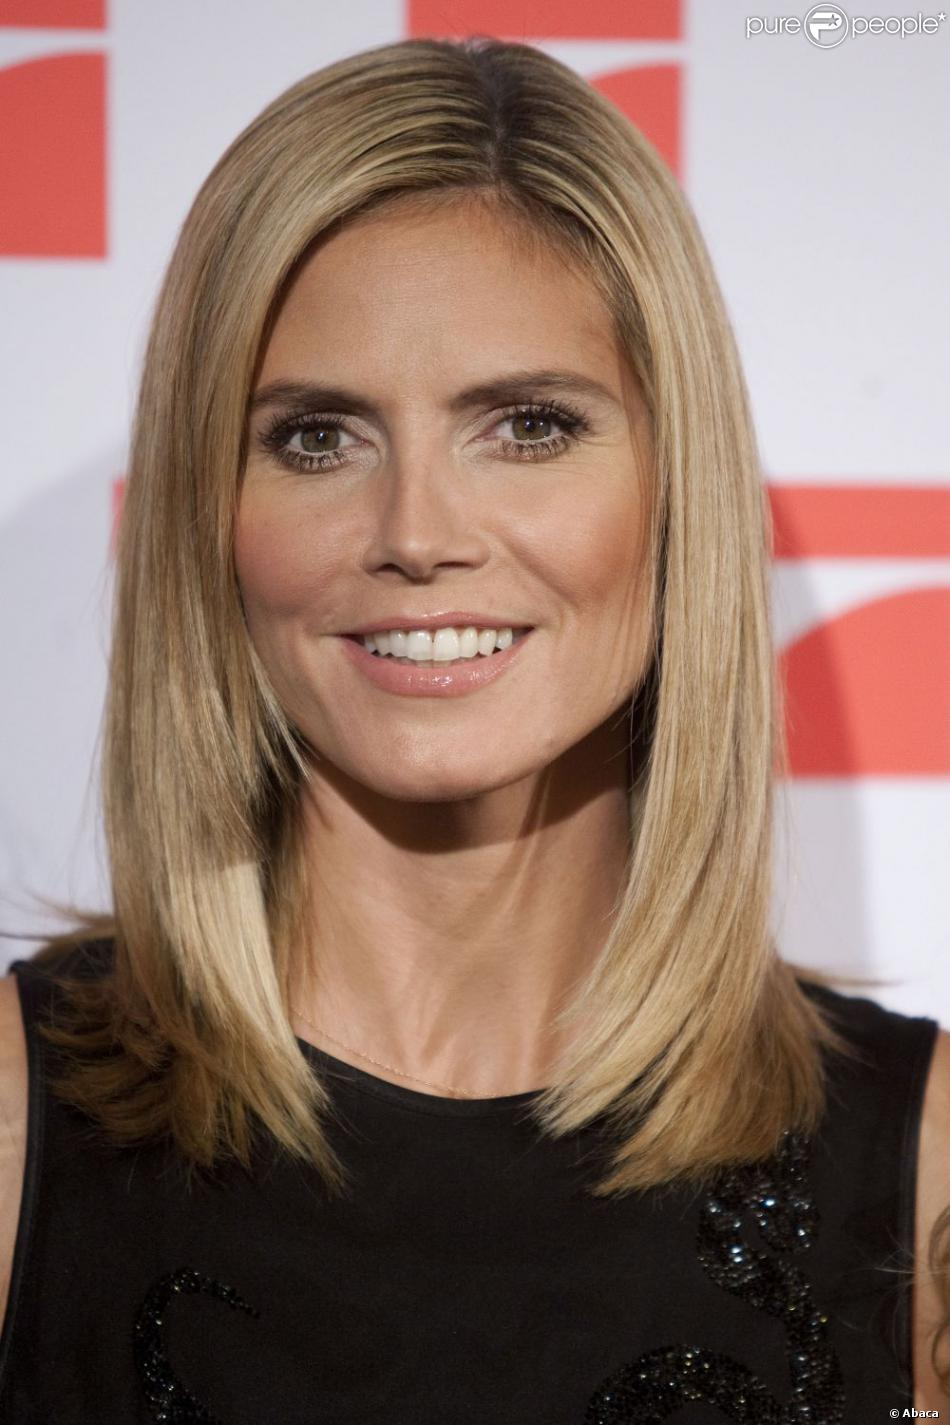 heidi klum est l 39 une des plus belles femmes au monde elle anime l 39 mission de t l r alit. Black Bedroom Furniture Sets. Home Design Ideas